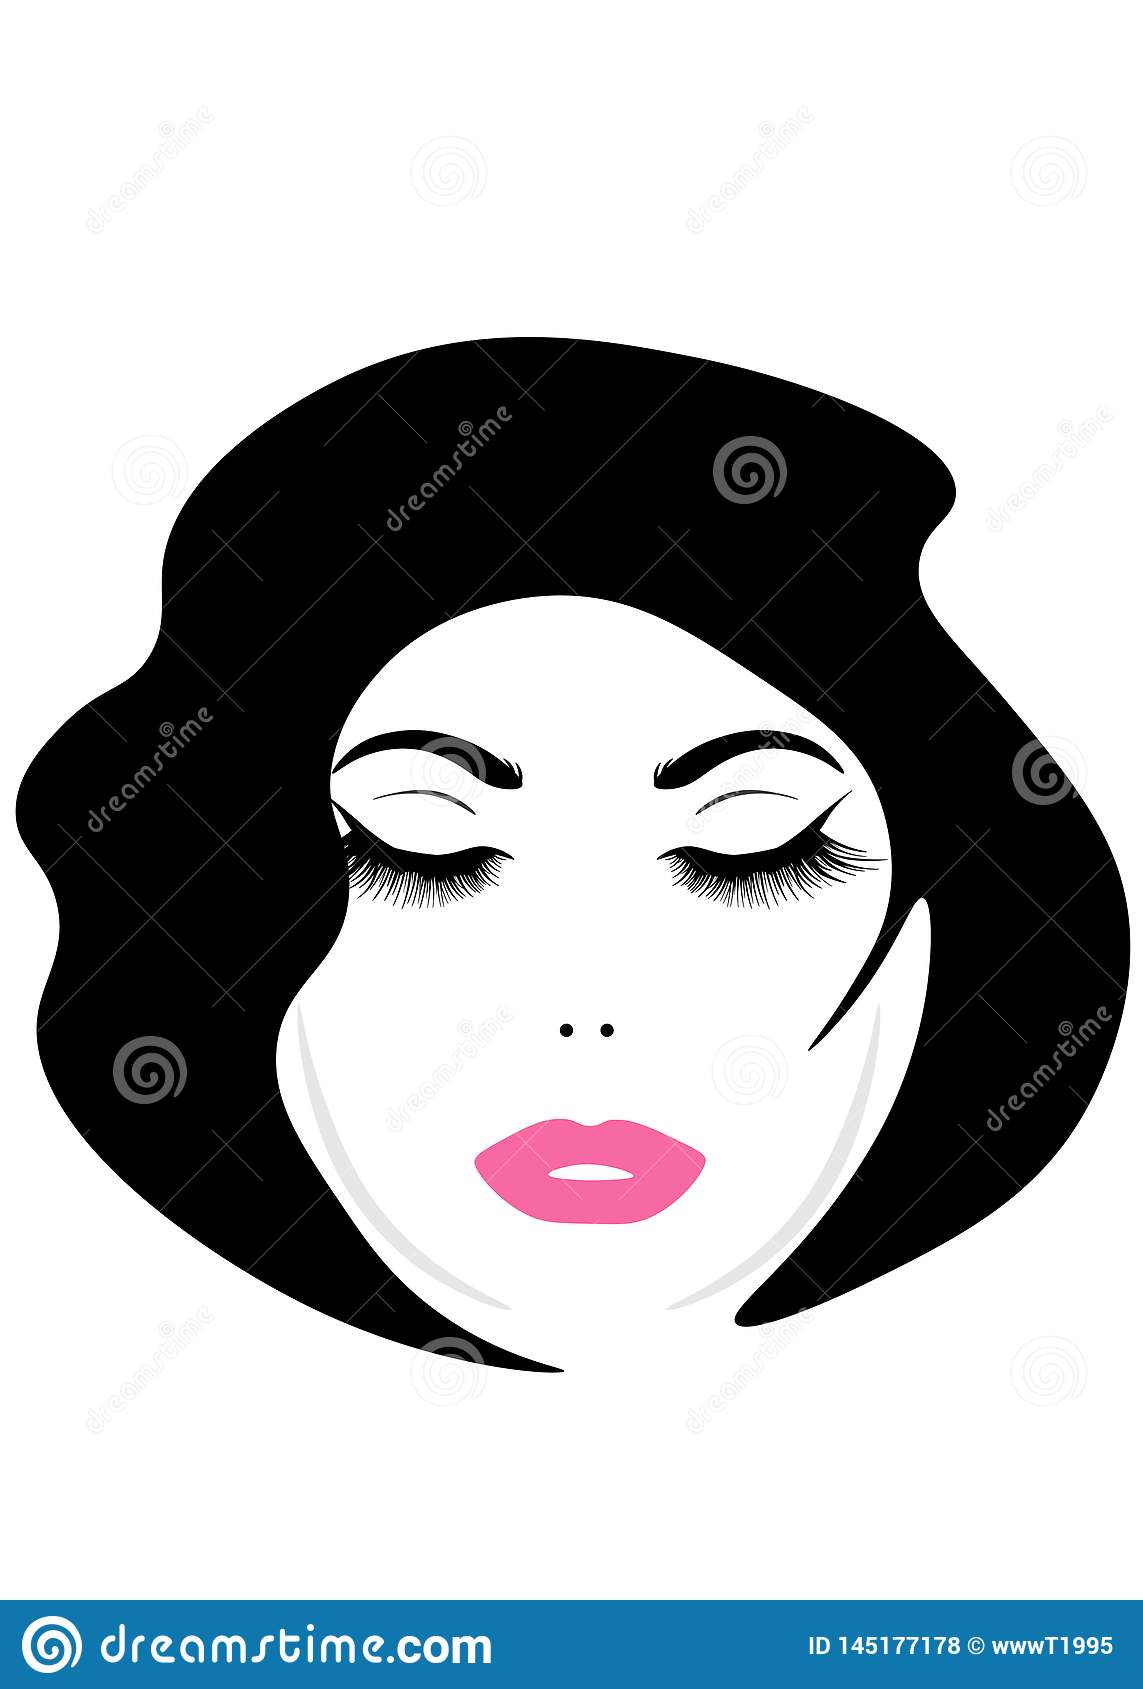 Web Face of a young beautiful woman with long hair. Women hairstyle icon. Logo women face with fashionable hairstyle. Vector